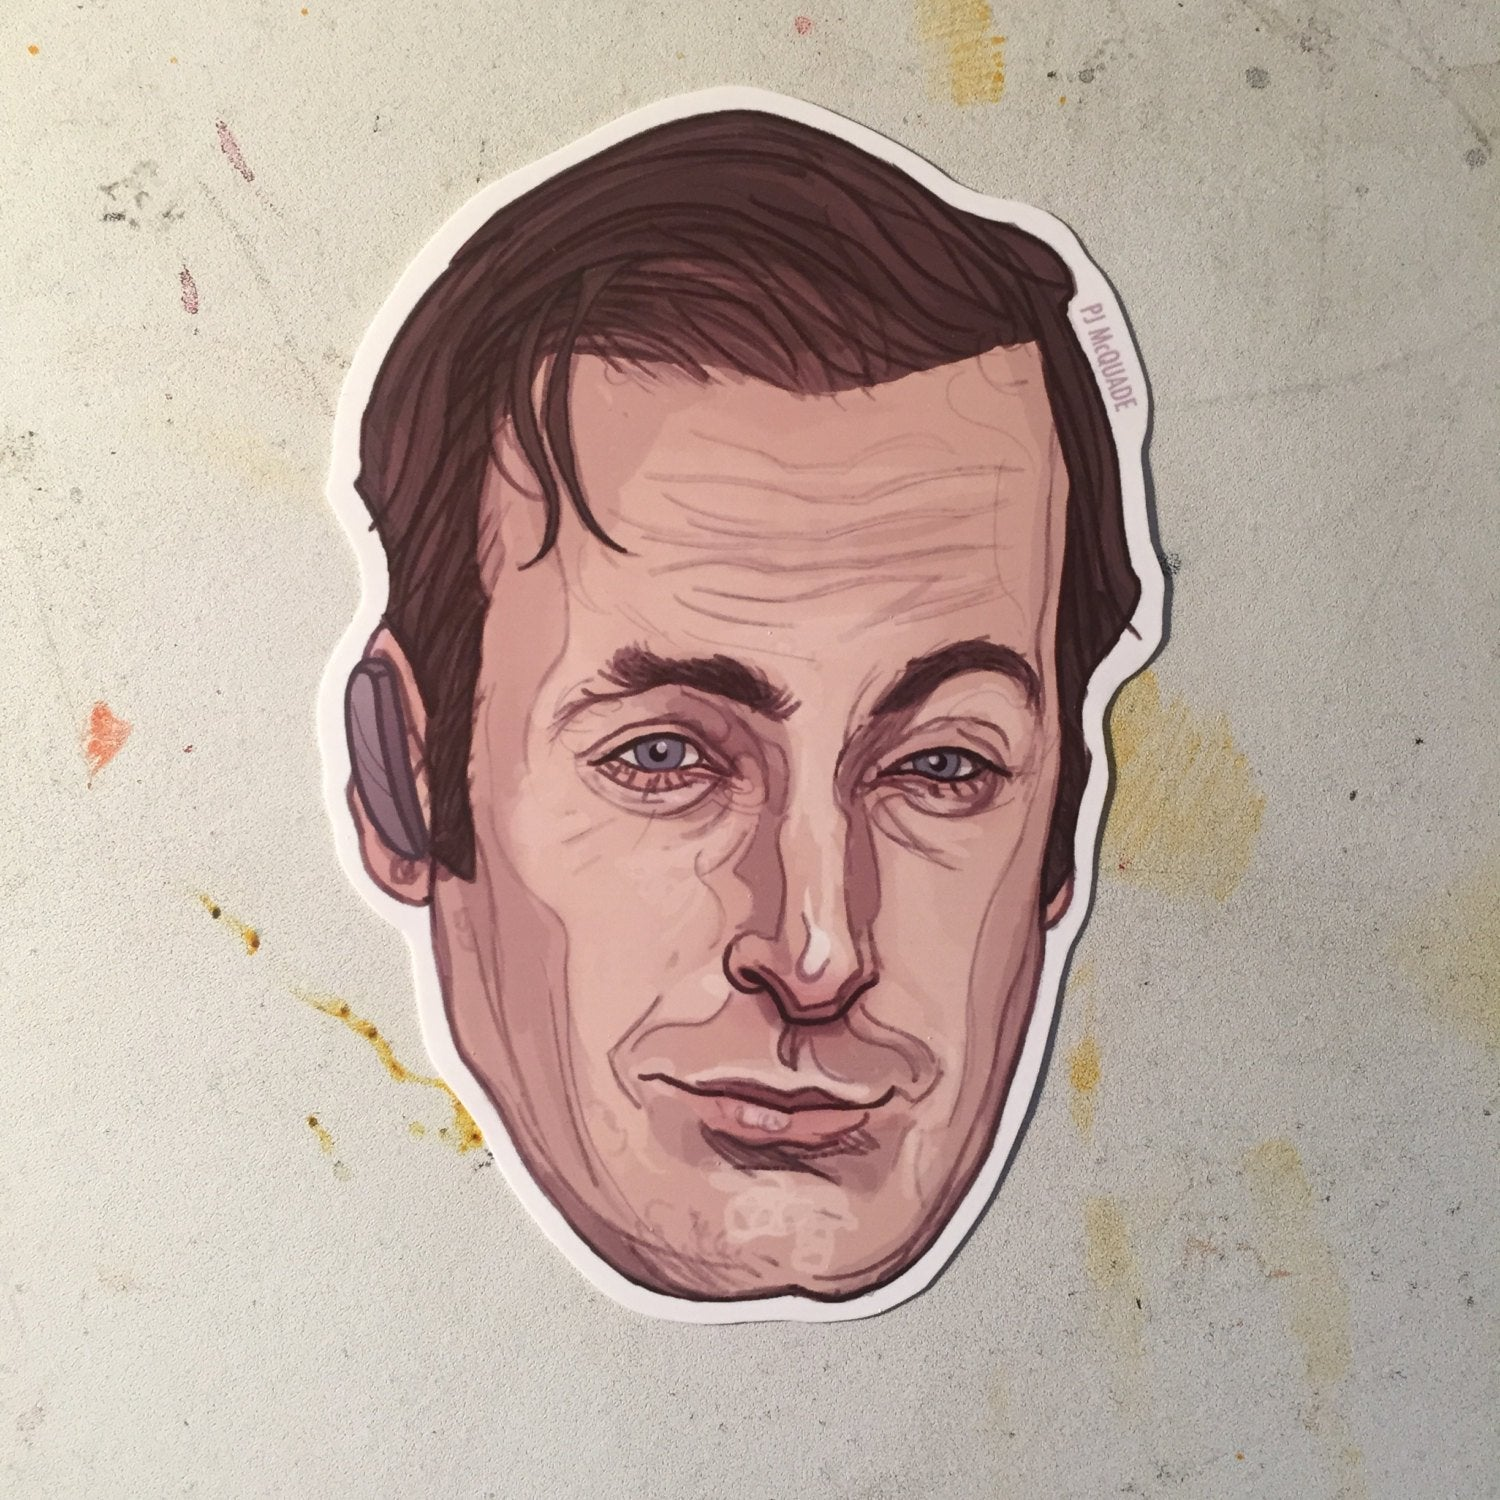 Saul Goodman BREAKING BAD sticker